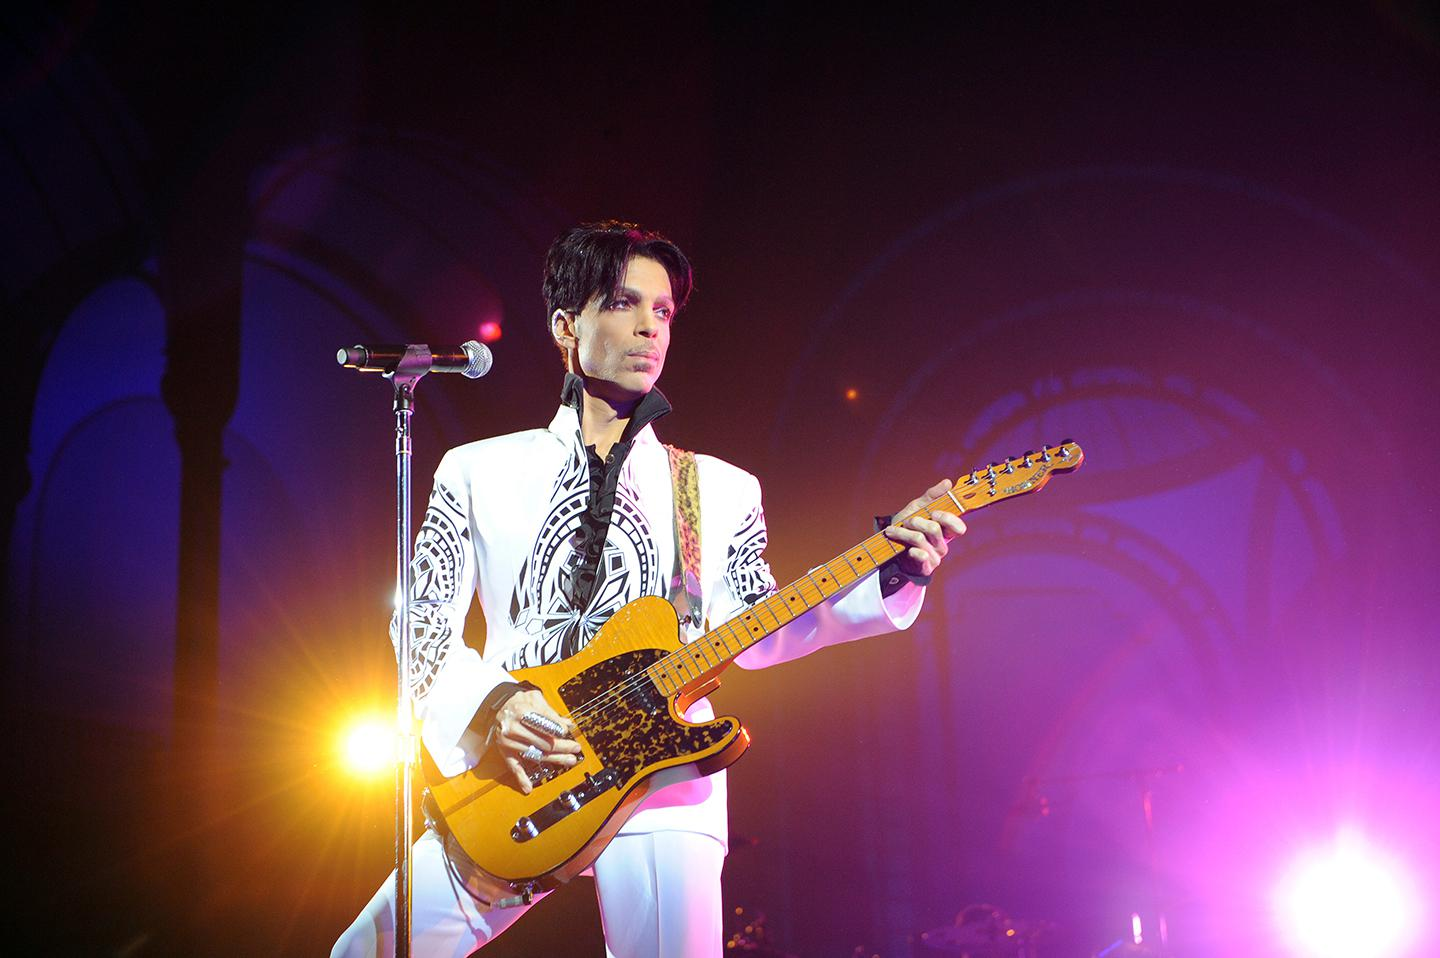 Prince performs on October 11, 2009 at the Grand Palais in Paris. The artist's posthumous album, 'Piano and a Microphone 1983,' is an unusually intimate glimpse of his creative process.